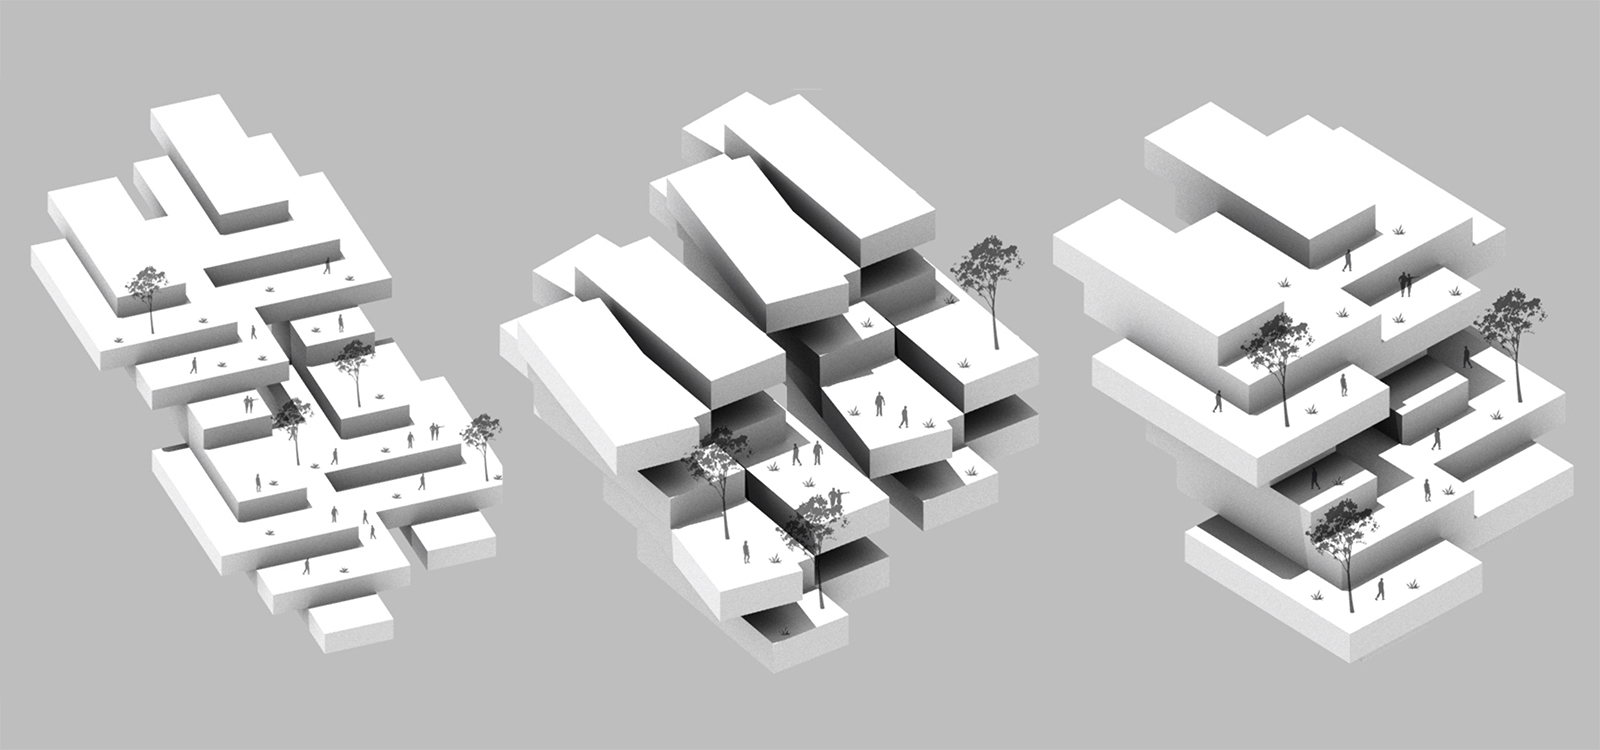 Trio of collective unit studies impacting the overall massing of terraced housing by student Miguel Ceniseros Nunez